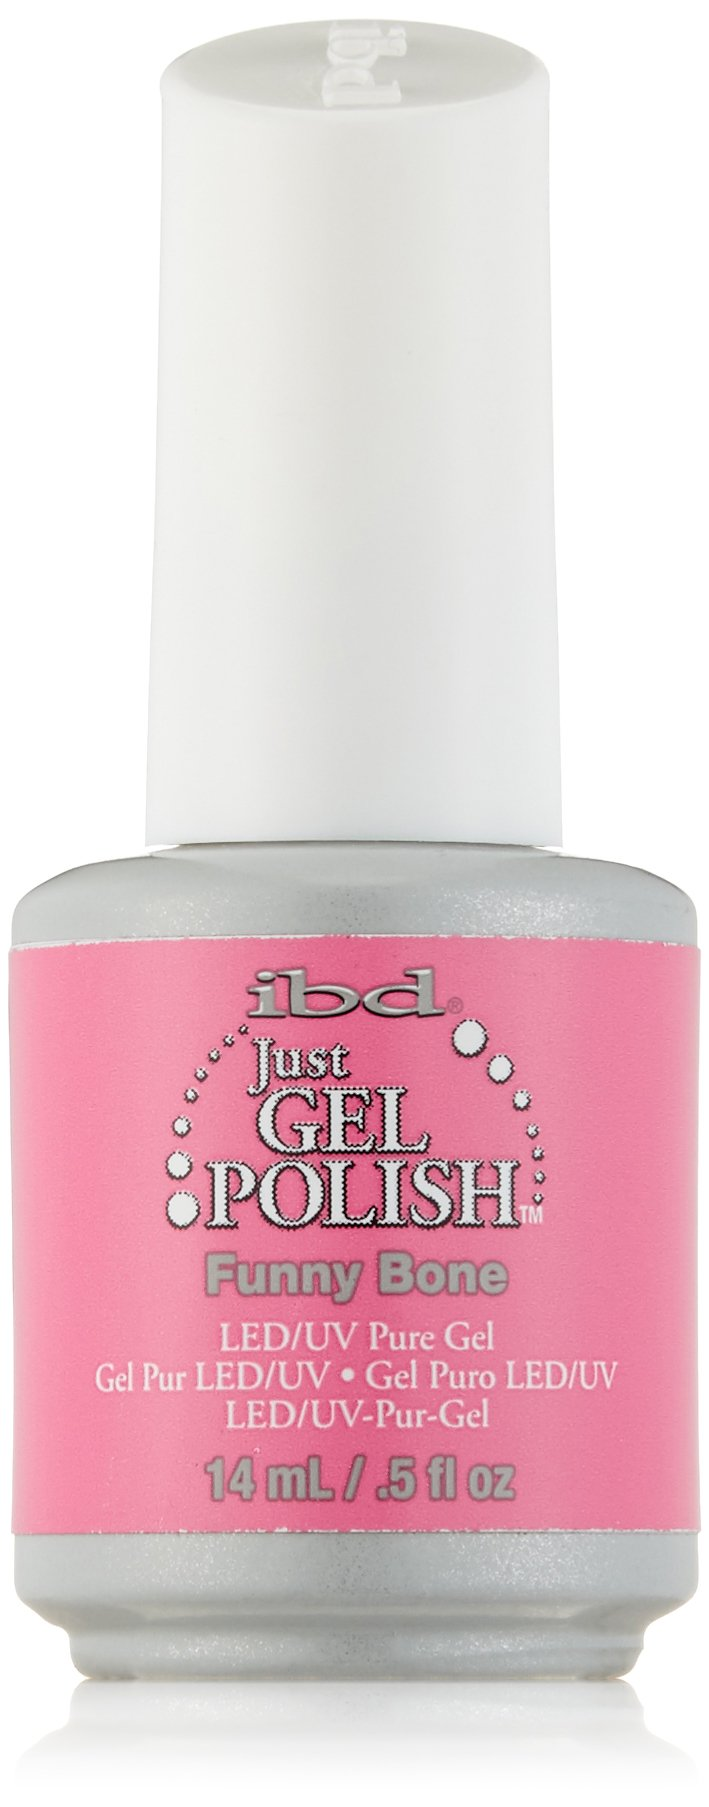 Home ibd just gel polish ibd just gel polish abracadabra - Ibd Just Gel Nail Polish Funny Bone 0 5 Fluid Ounce